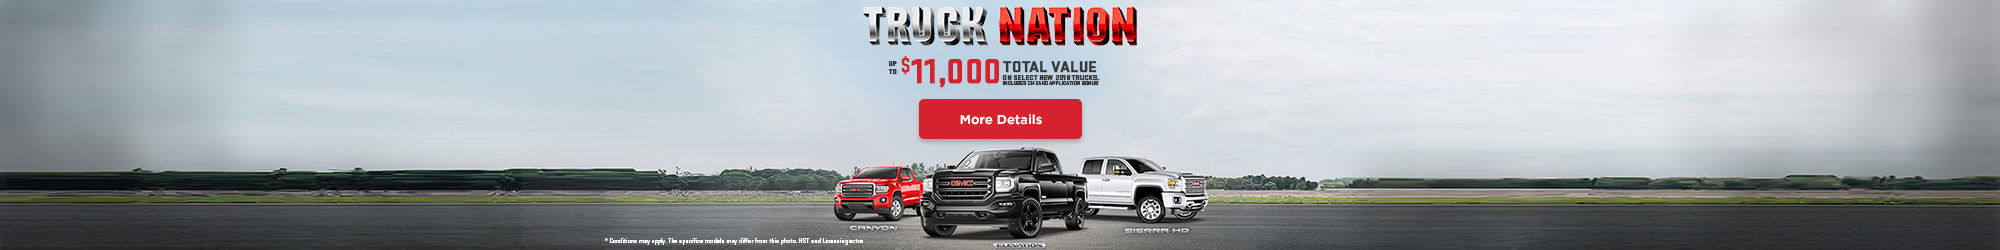 Truck Nation - GMC